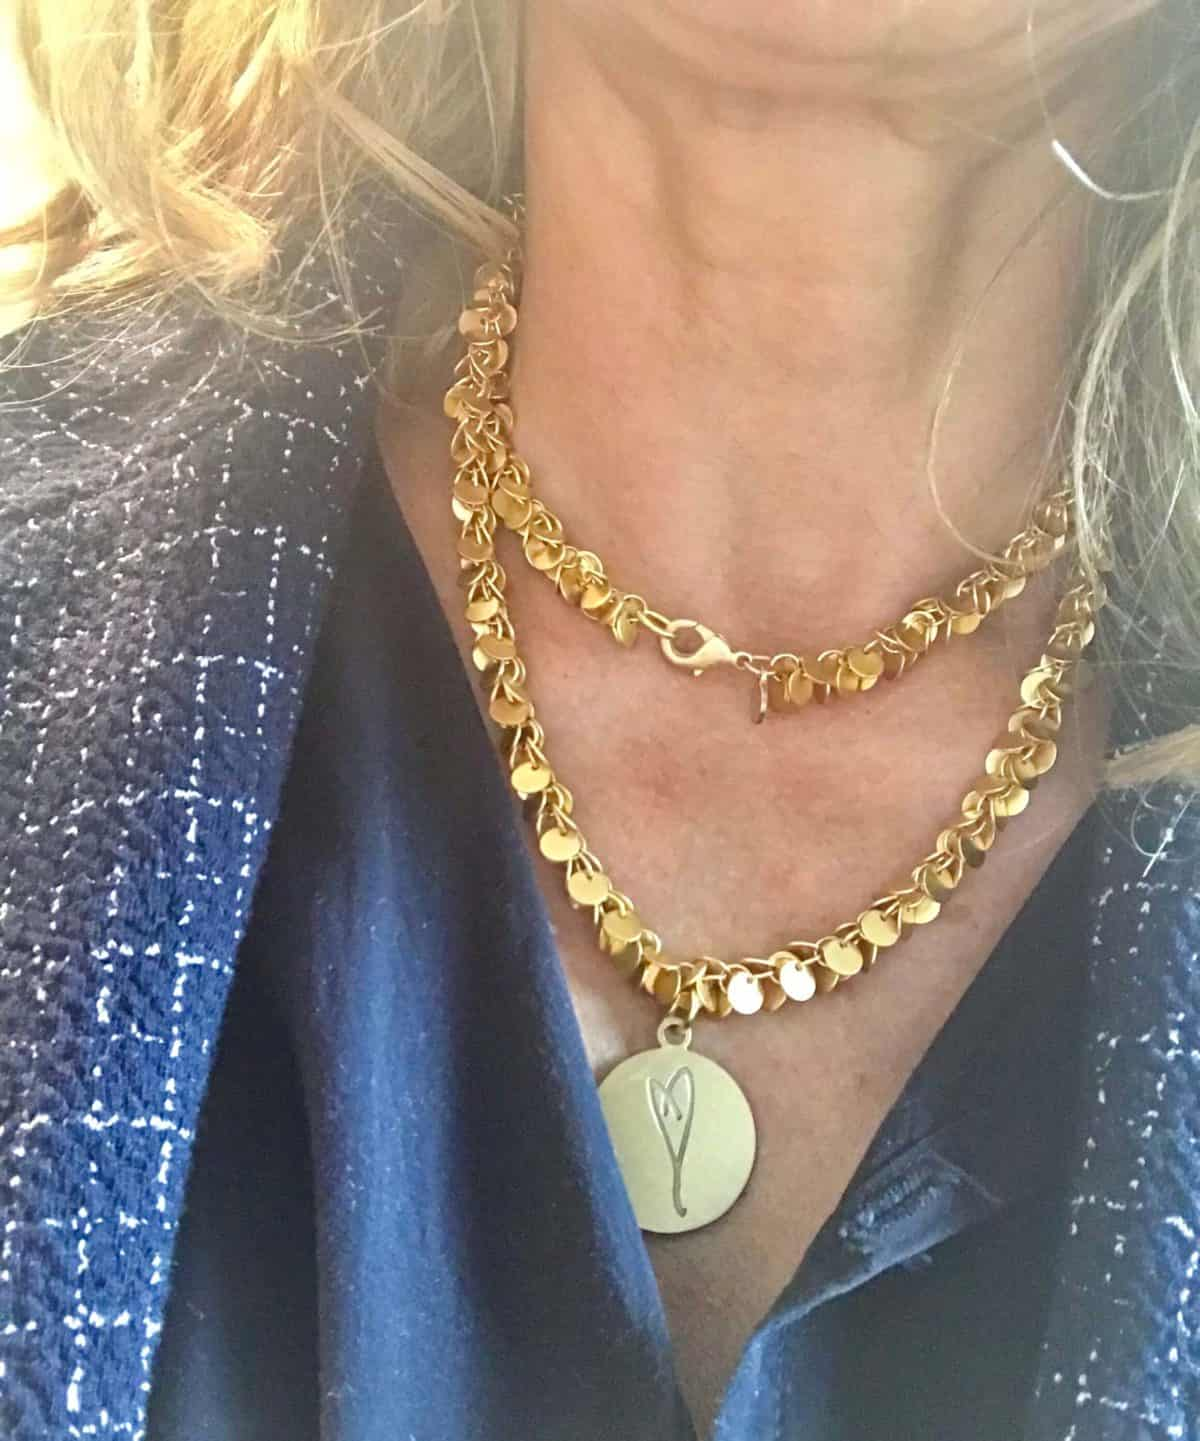 I wear Blue for Colon Cancer Awareness Month with the Here's To Life/Eartha Kitt's Heart necklace